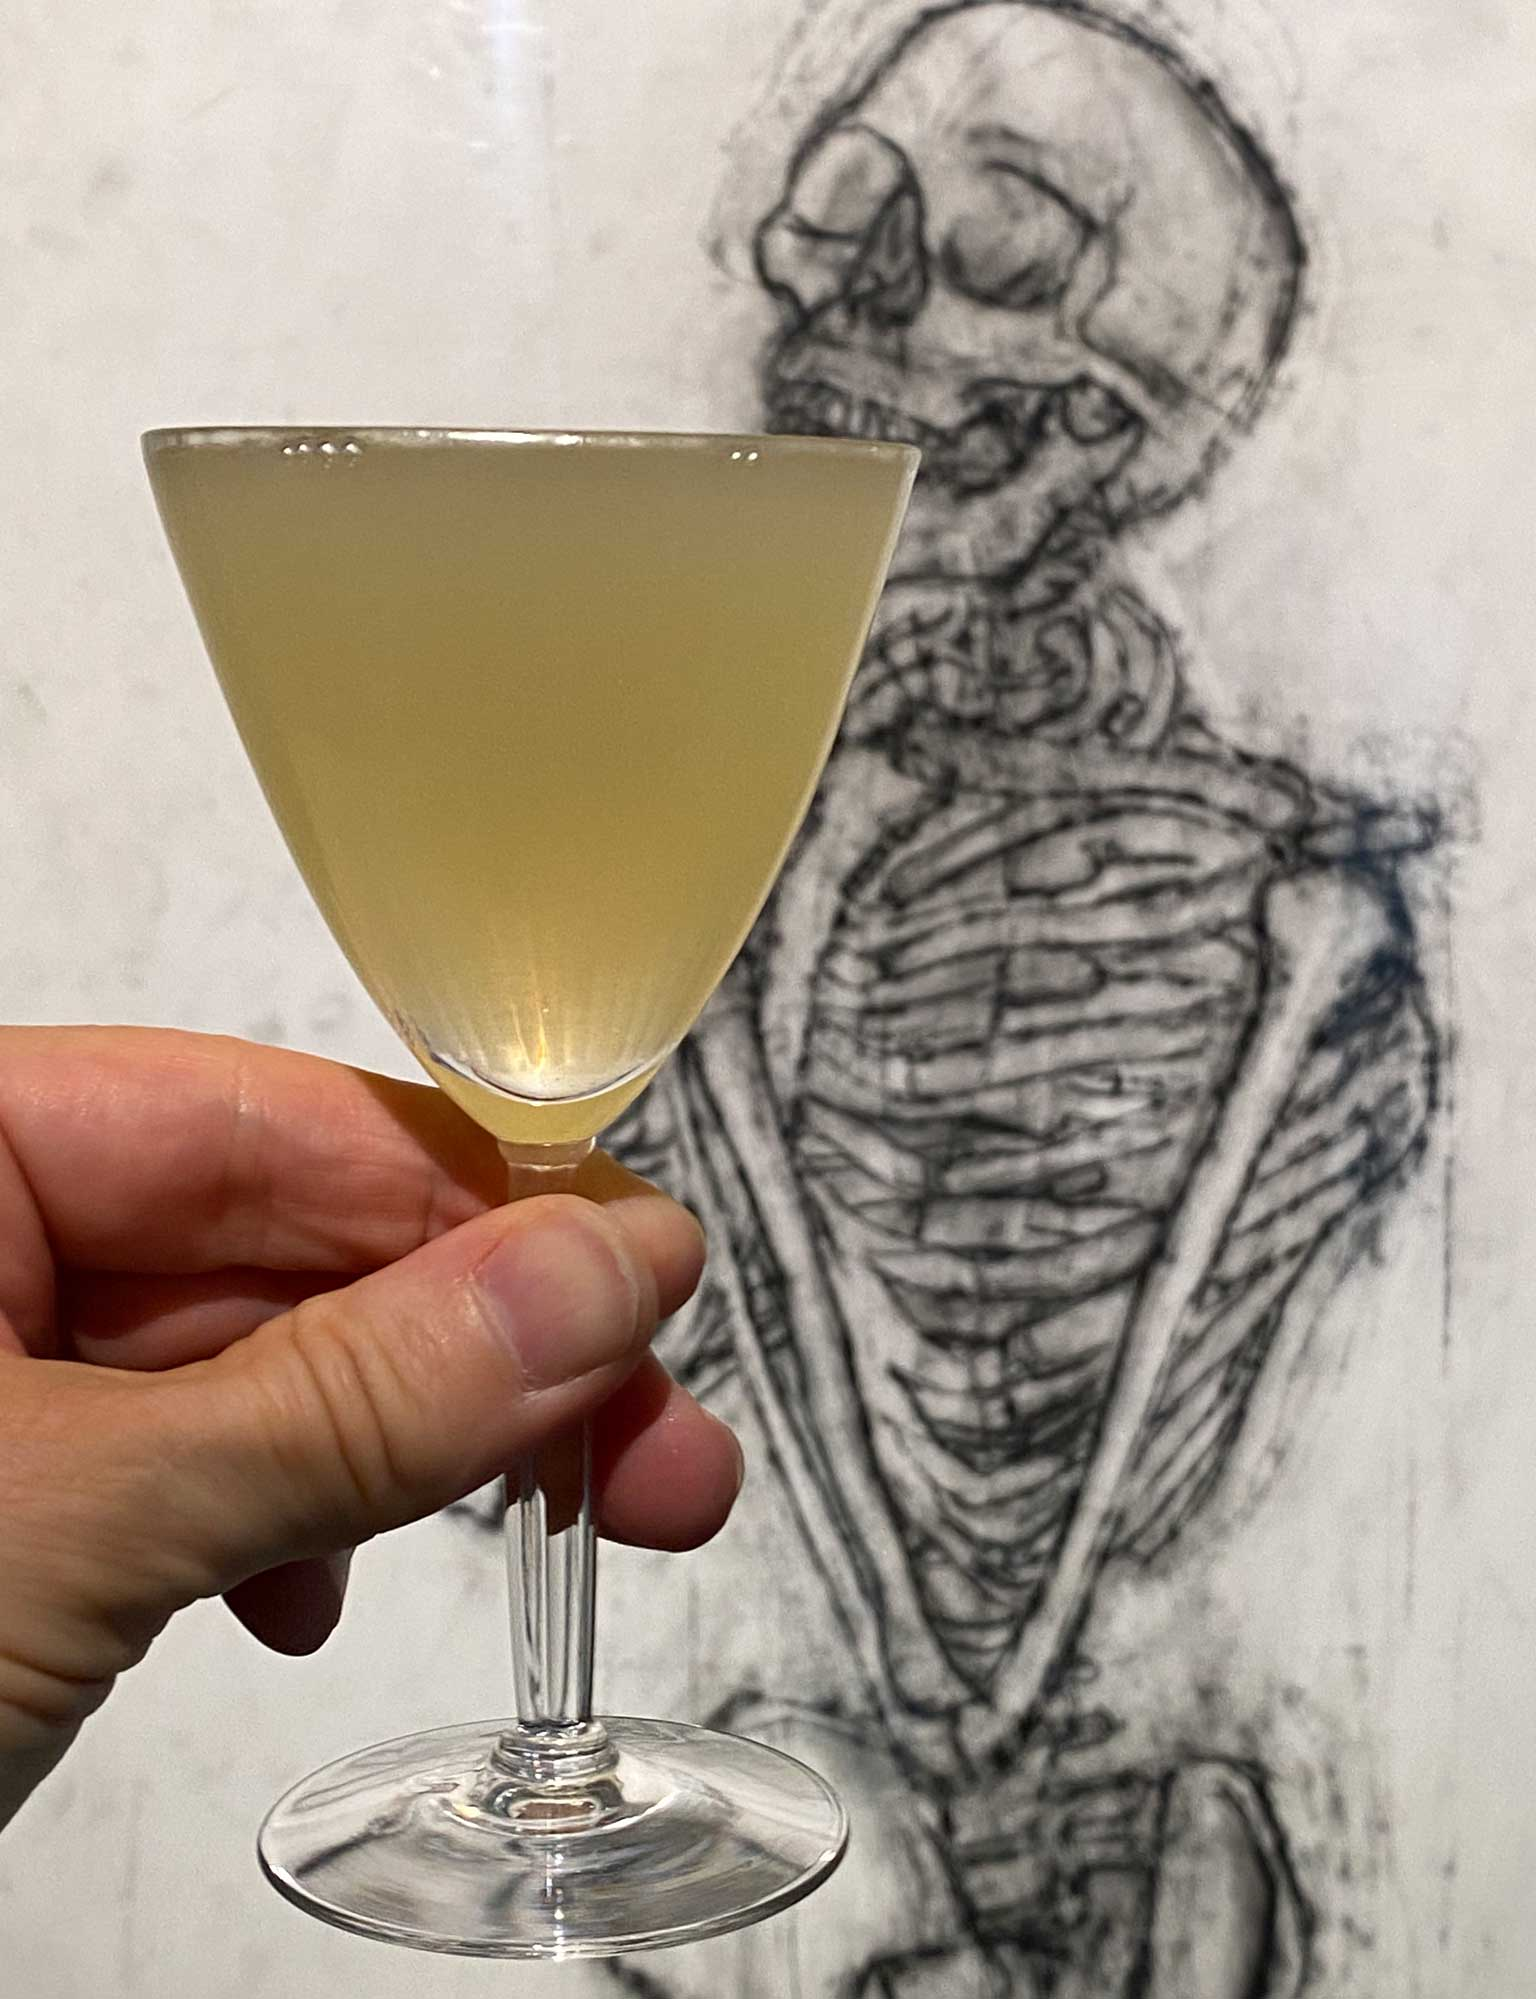 An example of the Corpse Reviver #2, the mixed drink (cocktail) featuring Hayman's London Dry Gin, Cocchi Americano Bianco, orange-flavored liqueur, lemon juice, and absinthe; photo by Martin Doudoroff